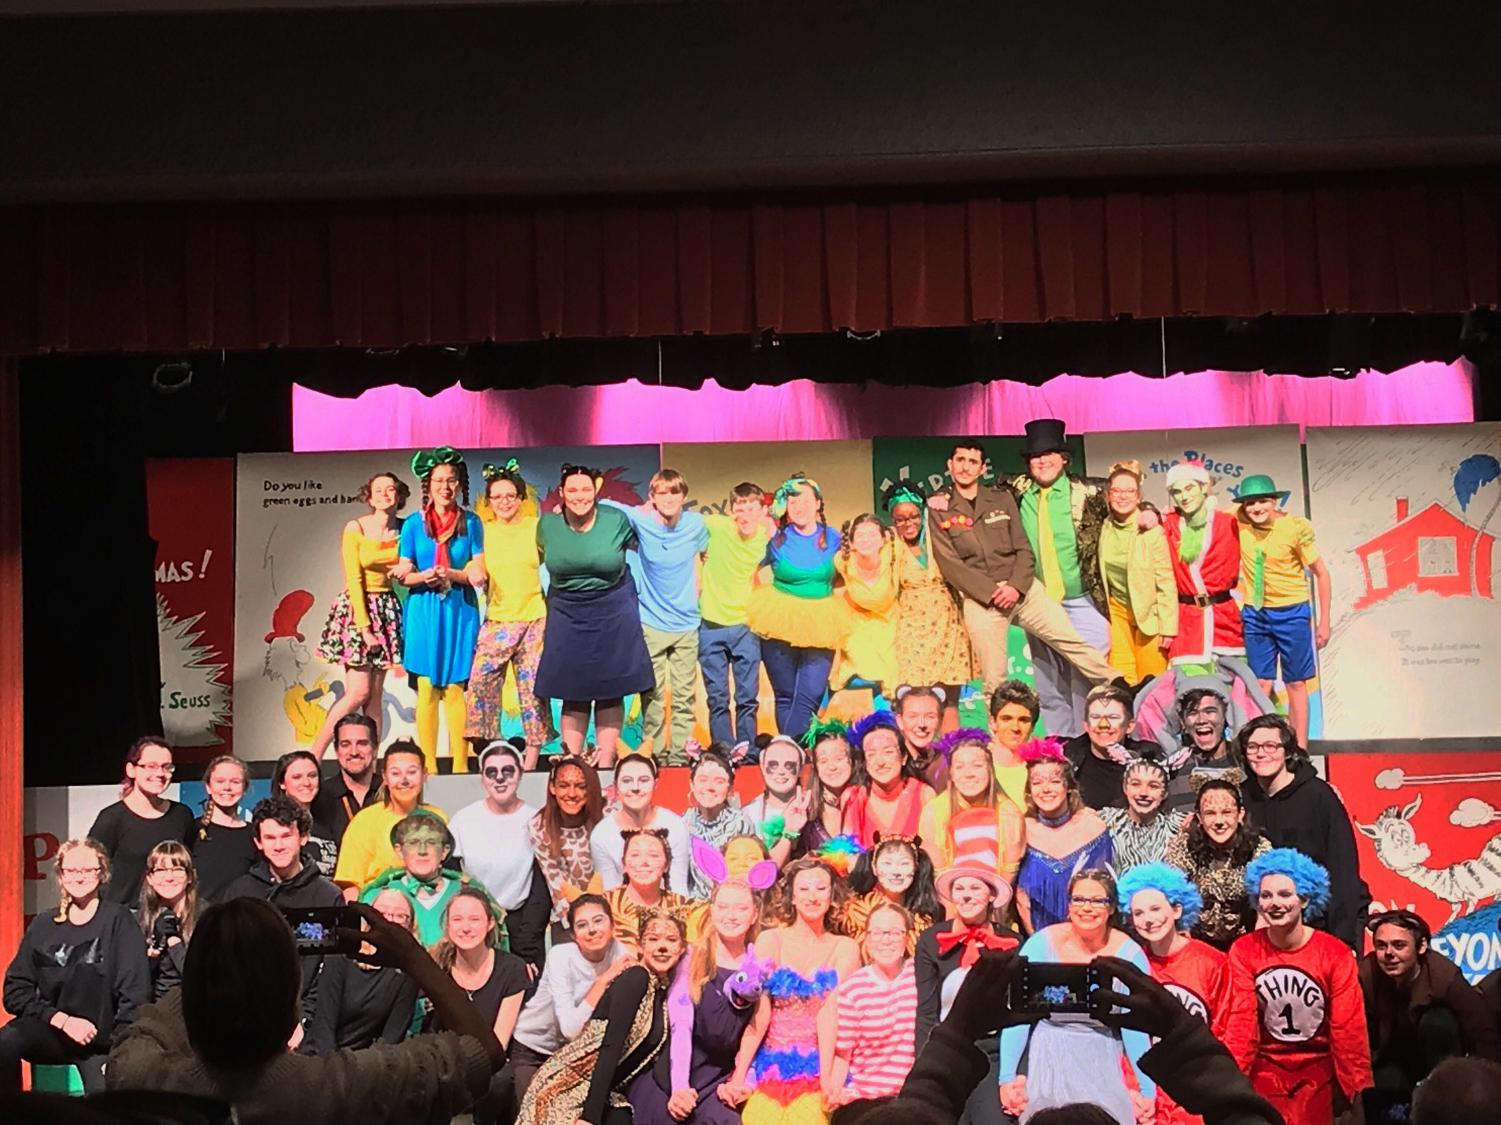 The Seussical cast poses for an ensemble photo after their opening night performance. The show closed March 30th, 2019.